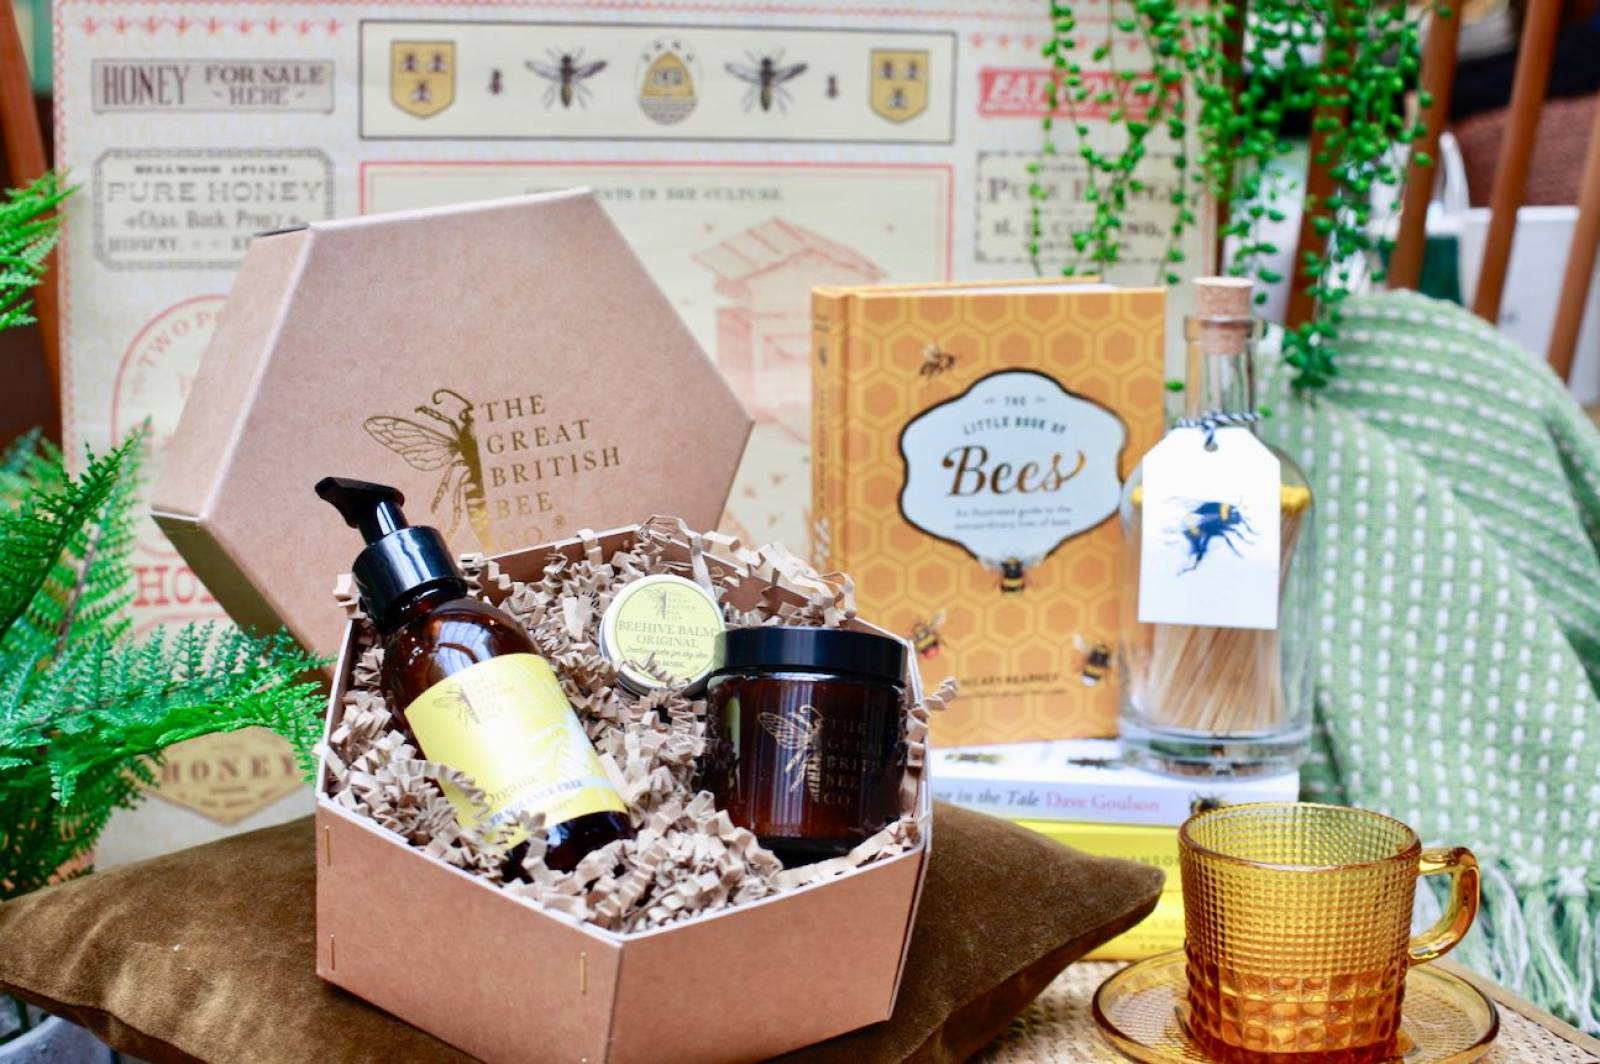 The Great British Bee Fragrance Free Gift Set